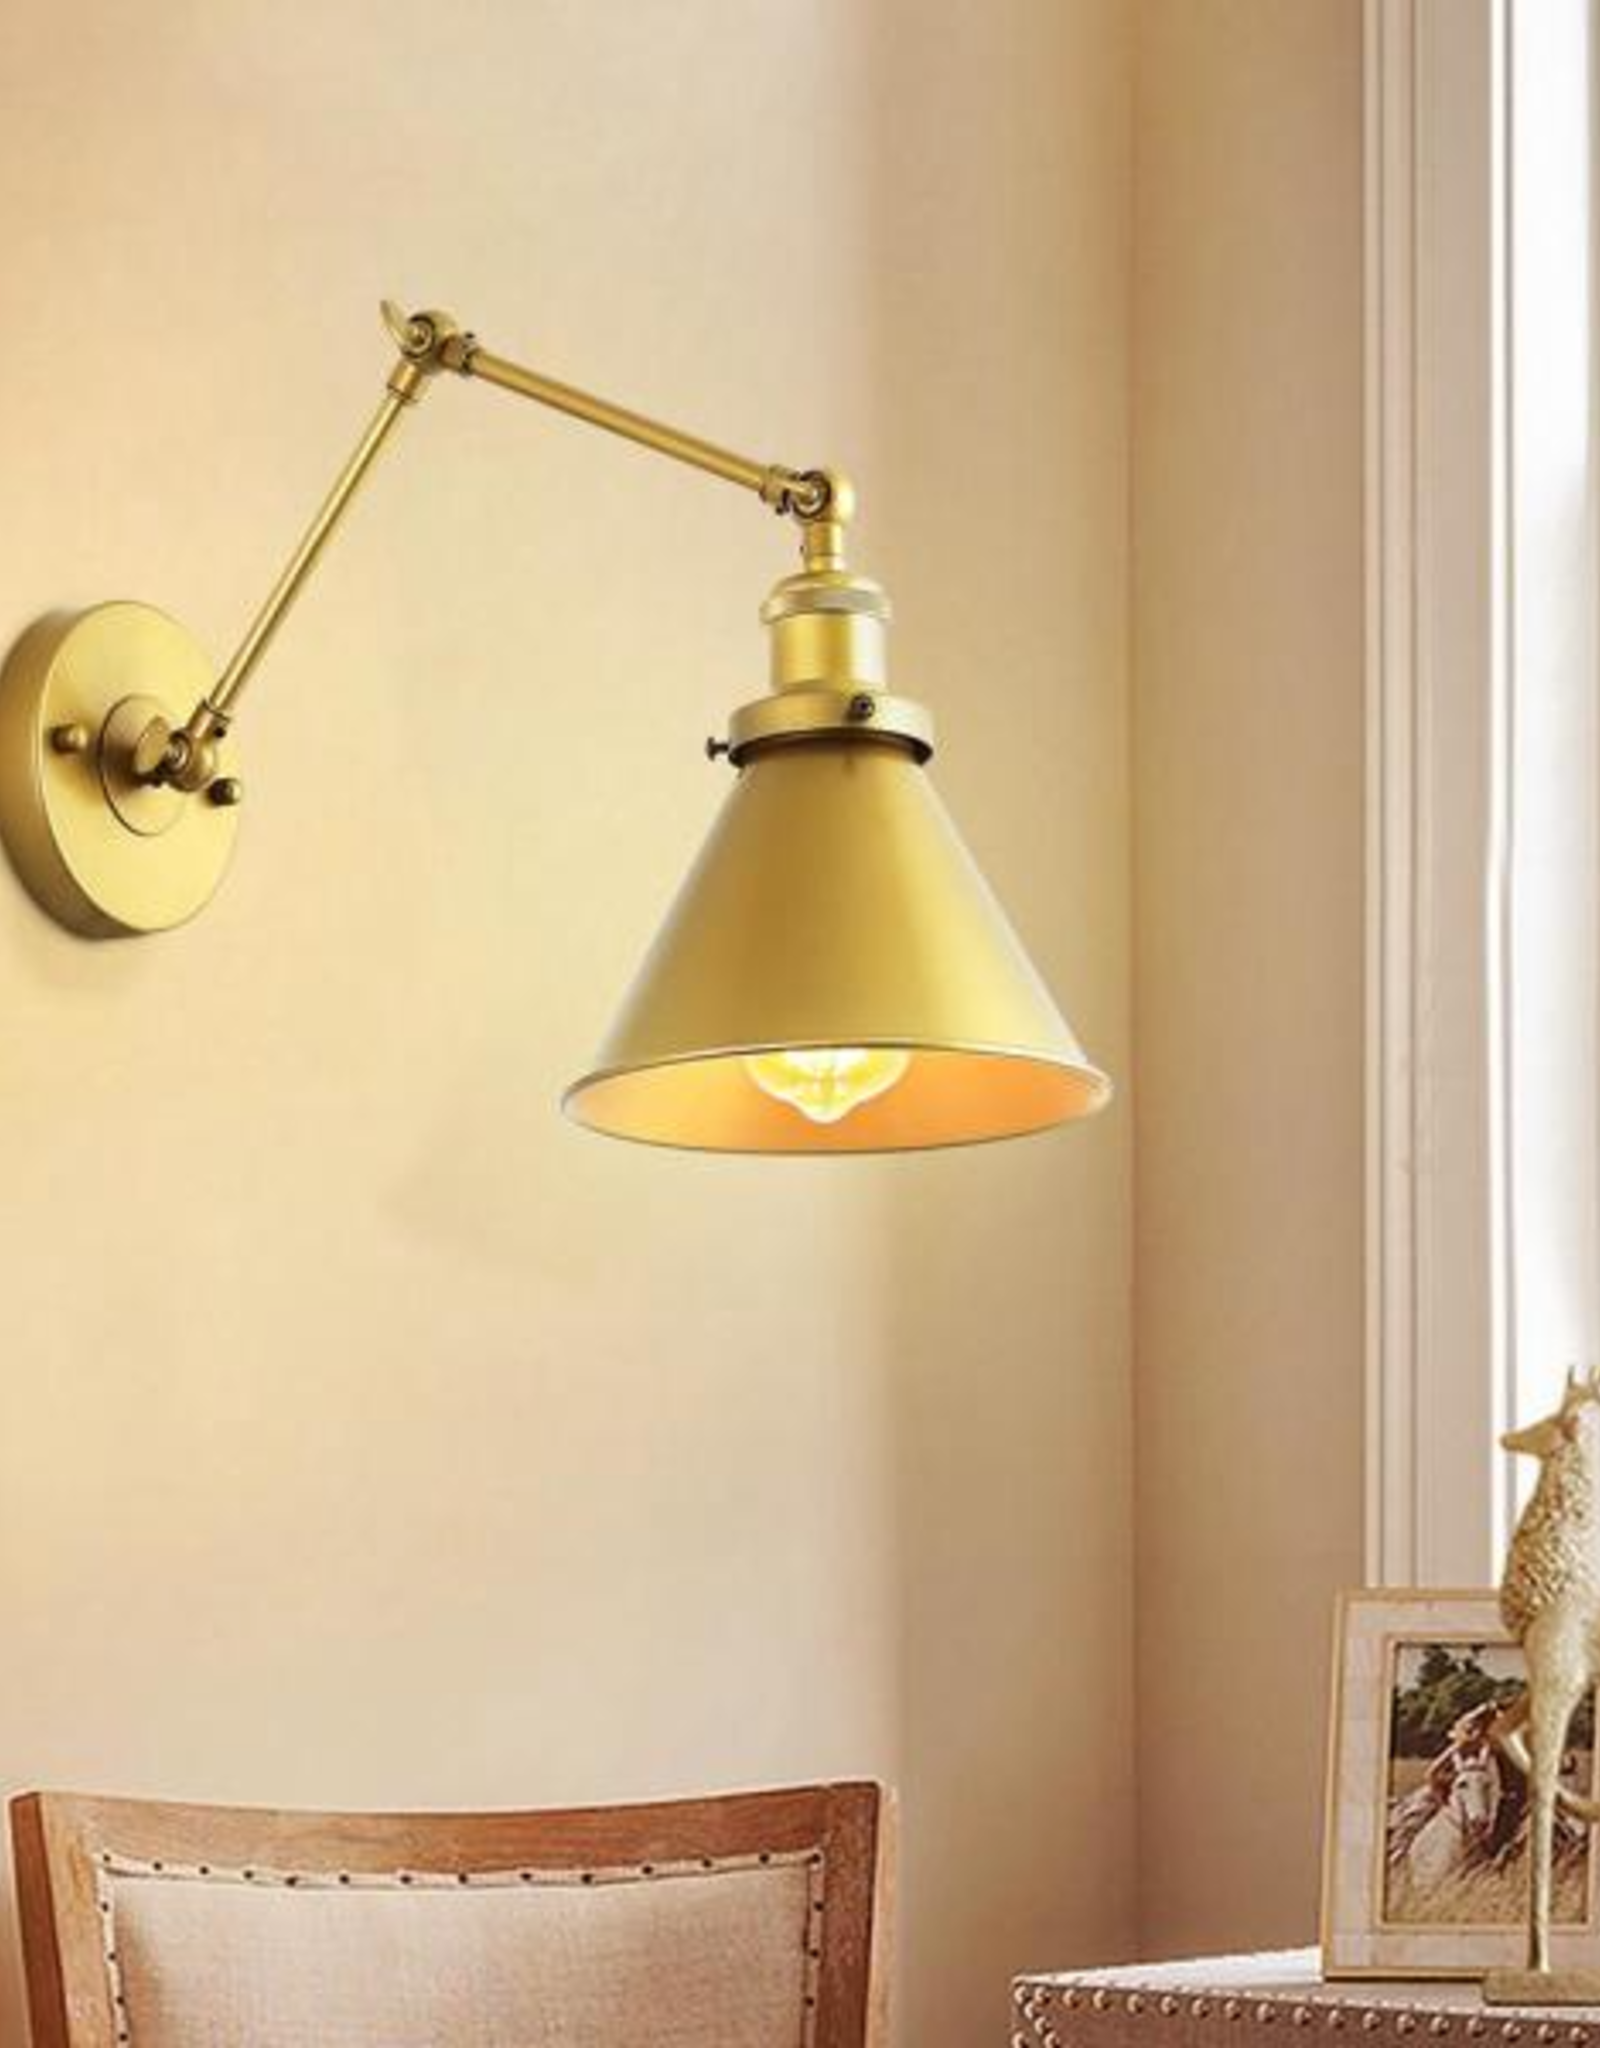 LNC Robi Brushed Gold Adjustable Metal Swing Arm Plug-In Wall Sconce